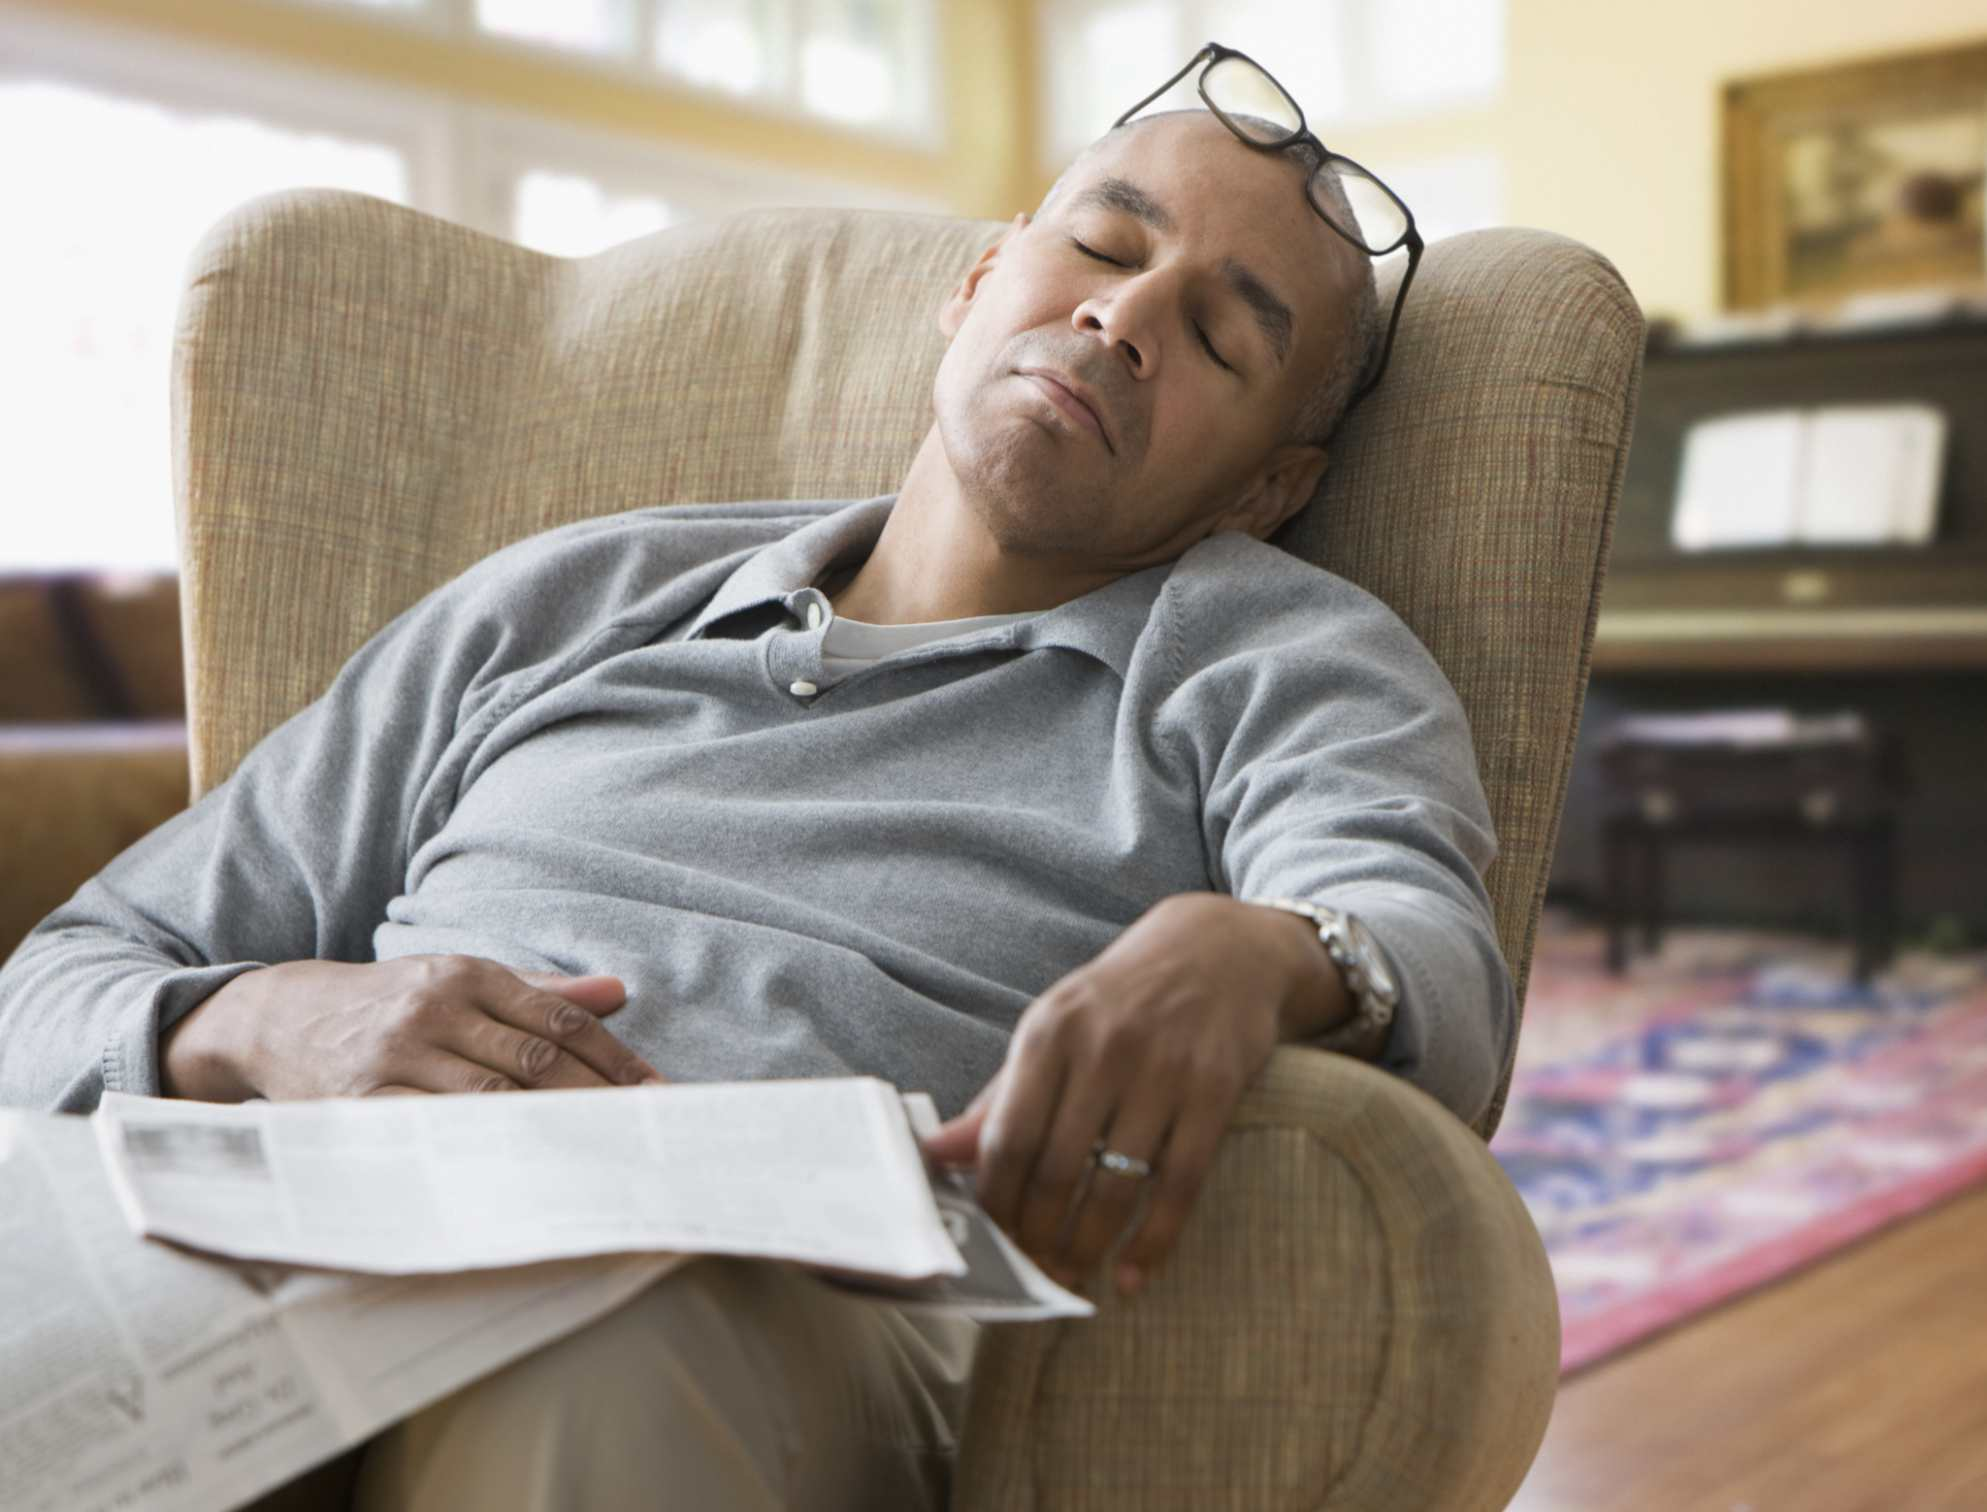 A man dozes off while reading the newspaper